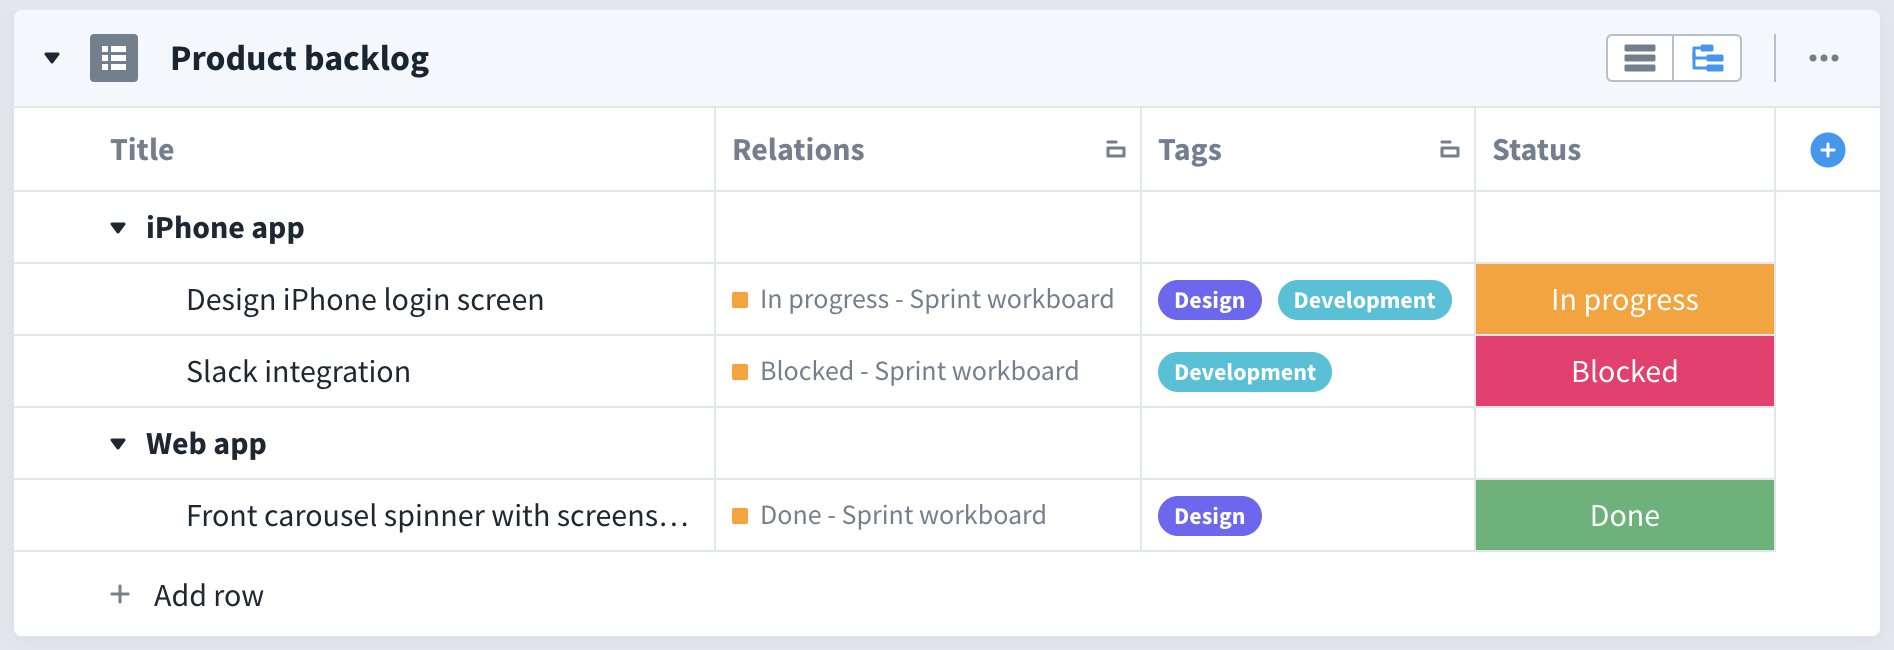 A product backlog in favro